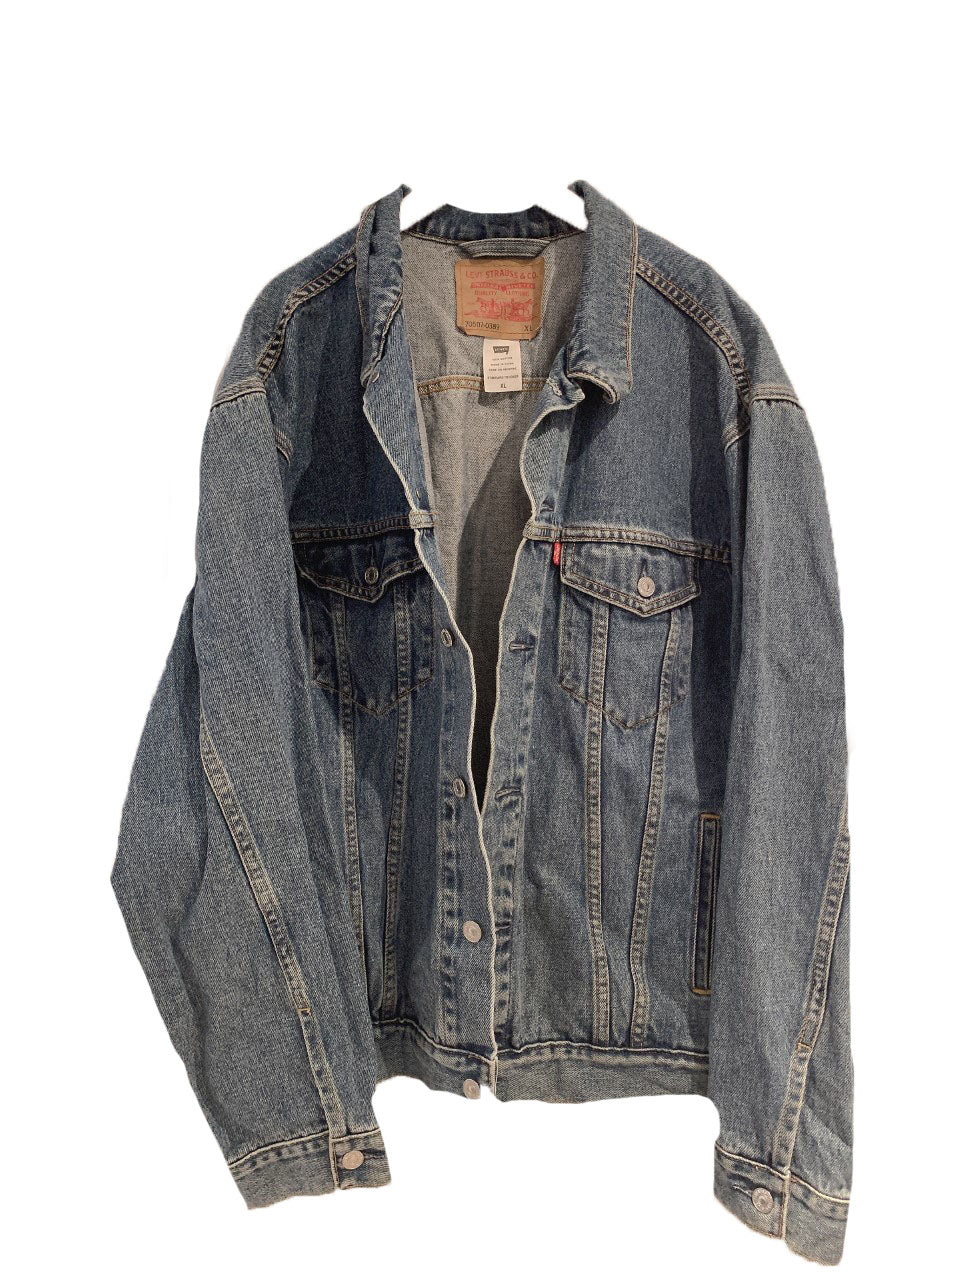 Levis original denim jacket